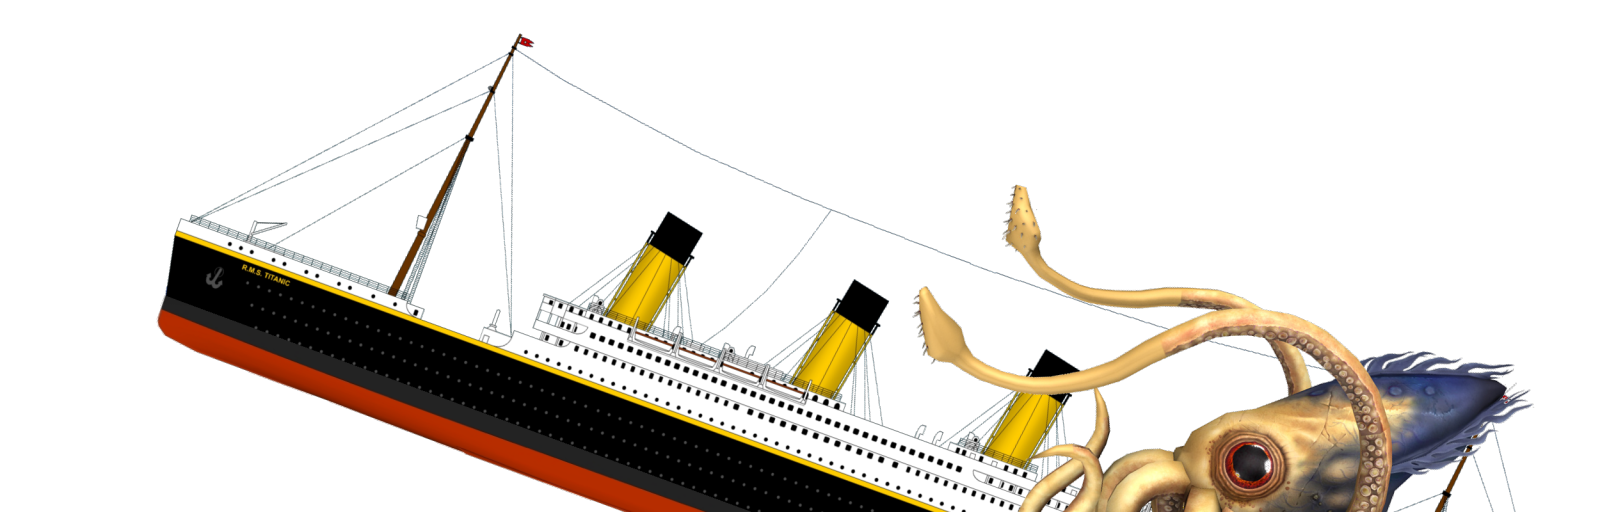 Titanic ship png. Unreal software file r